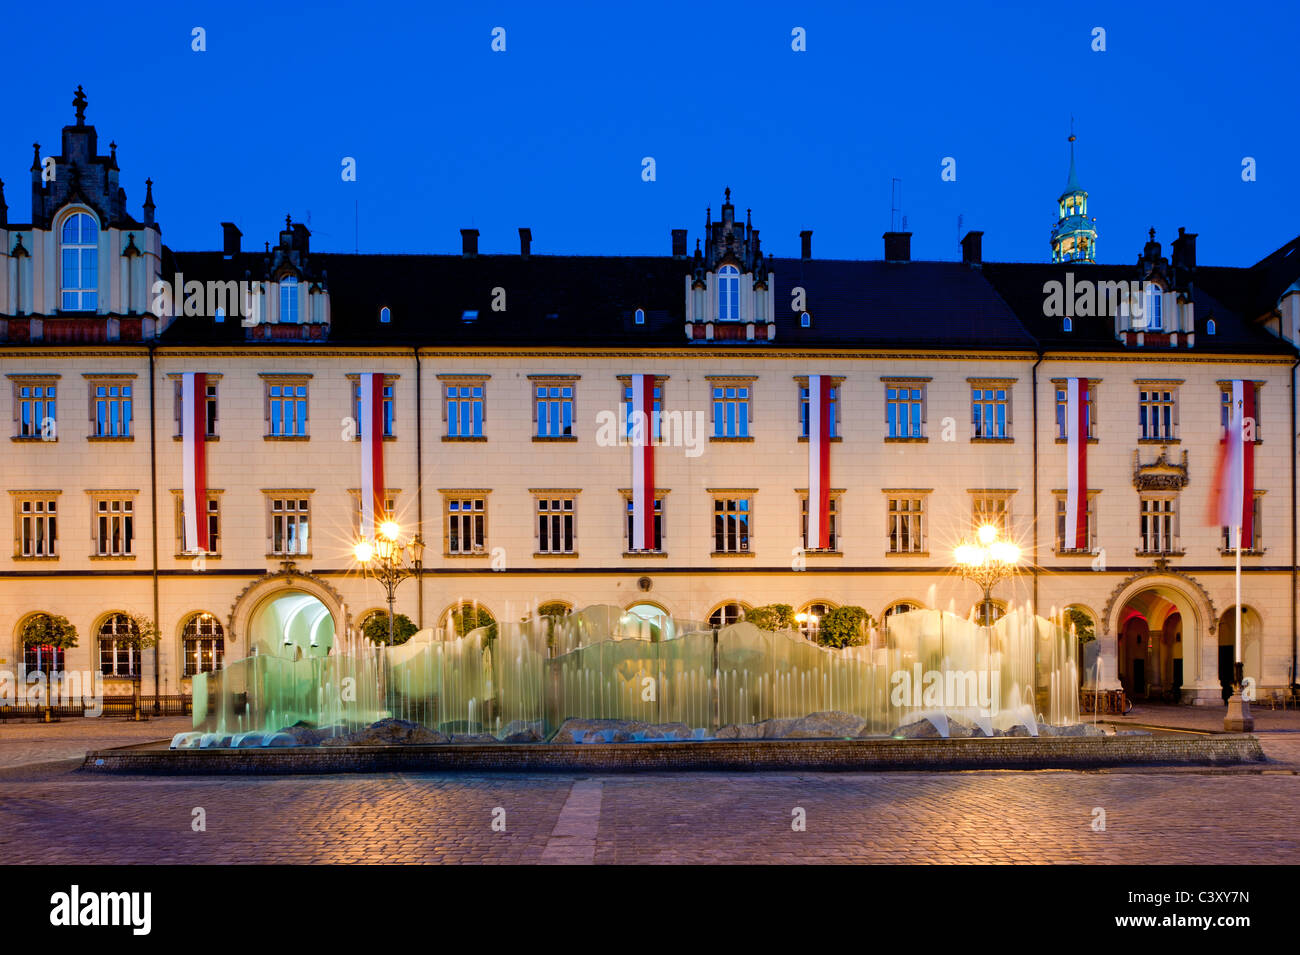 Contemporary fountain on Market Square, Old Town, Wroclaw, Poland Stock Photo